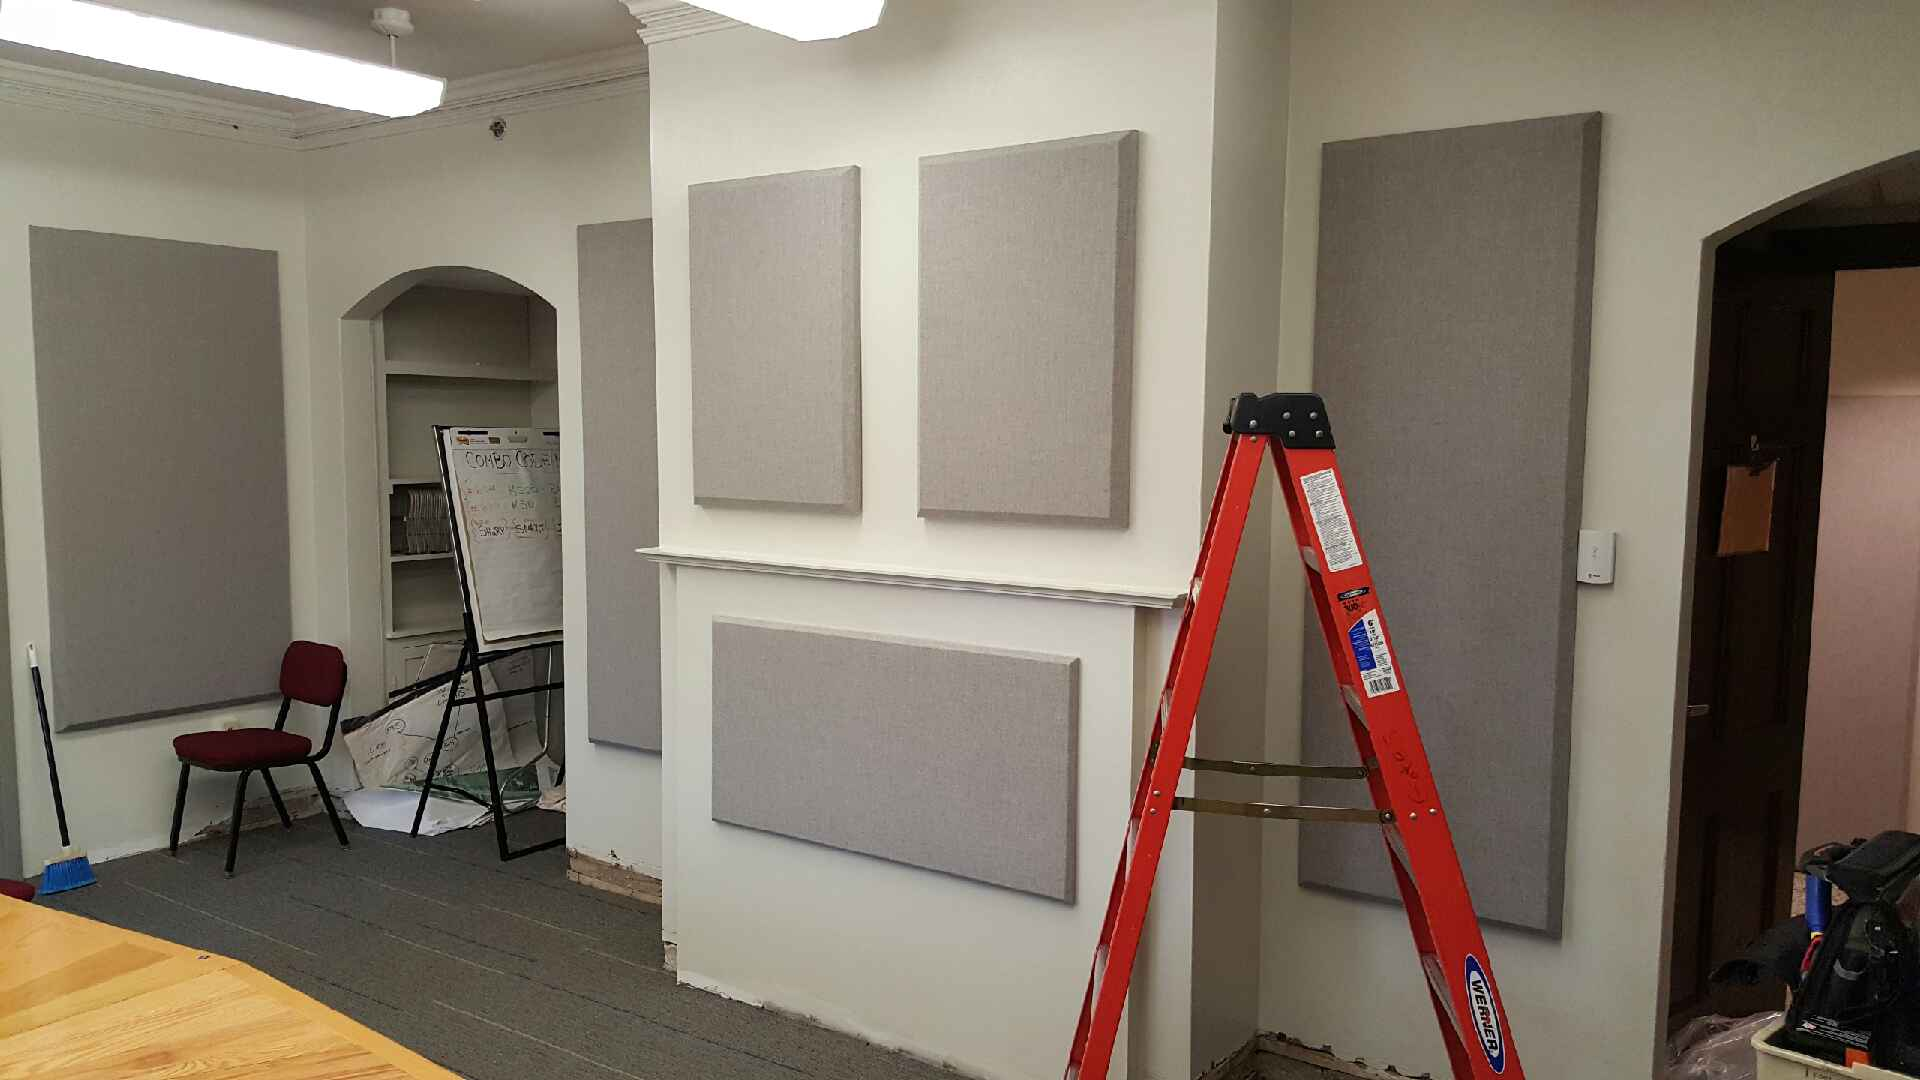 Sonora® Wall And Ceiling Panels Are Used For Absorbing Sound Within A Space.